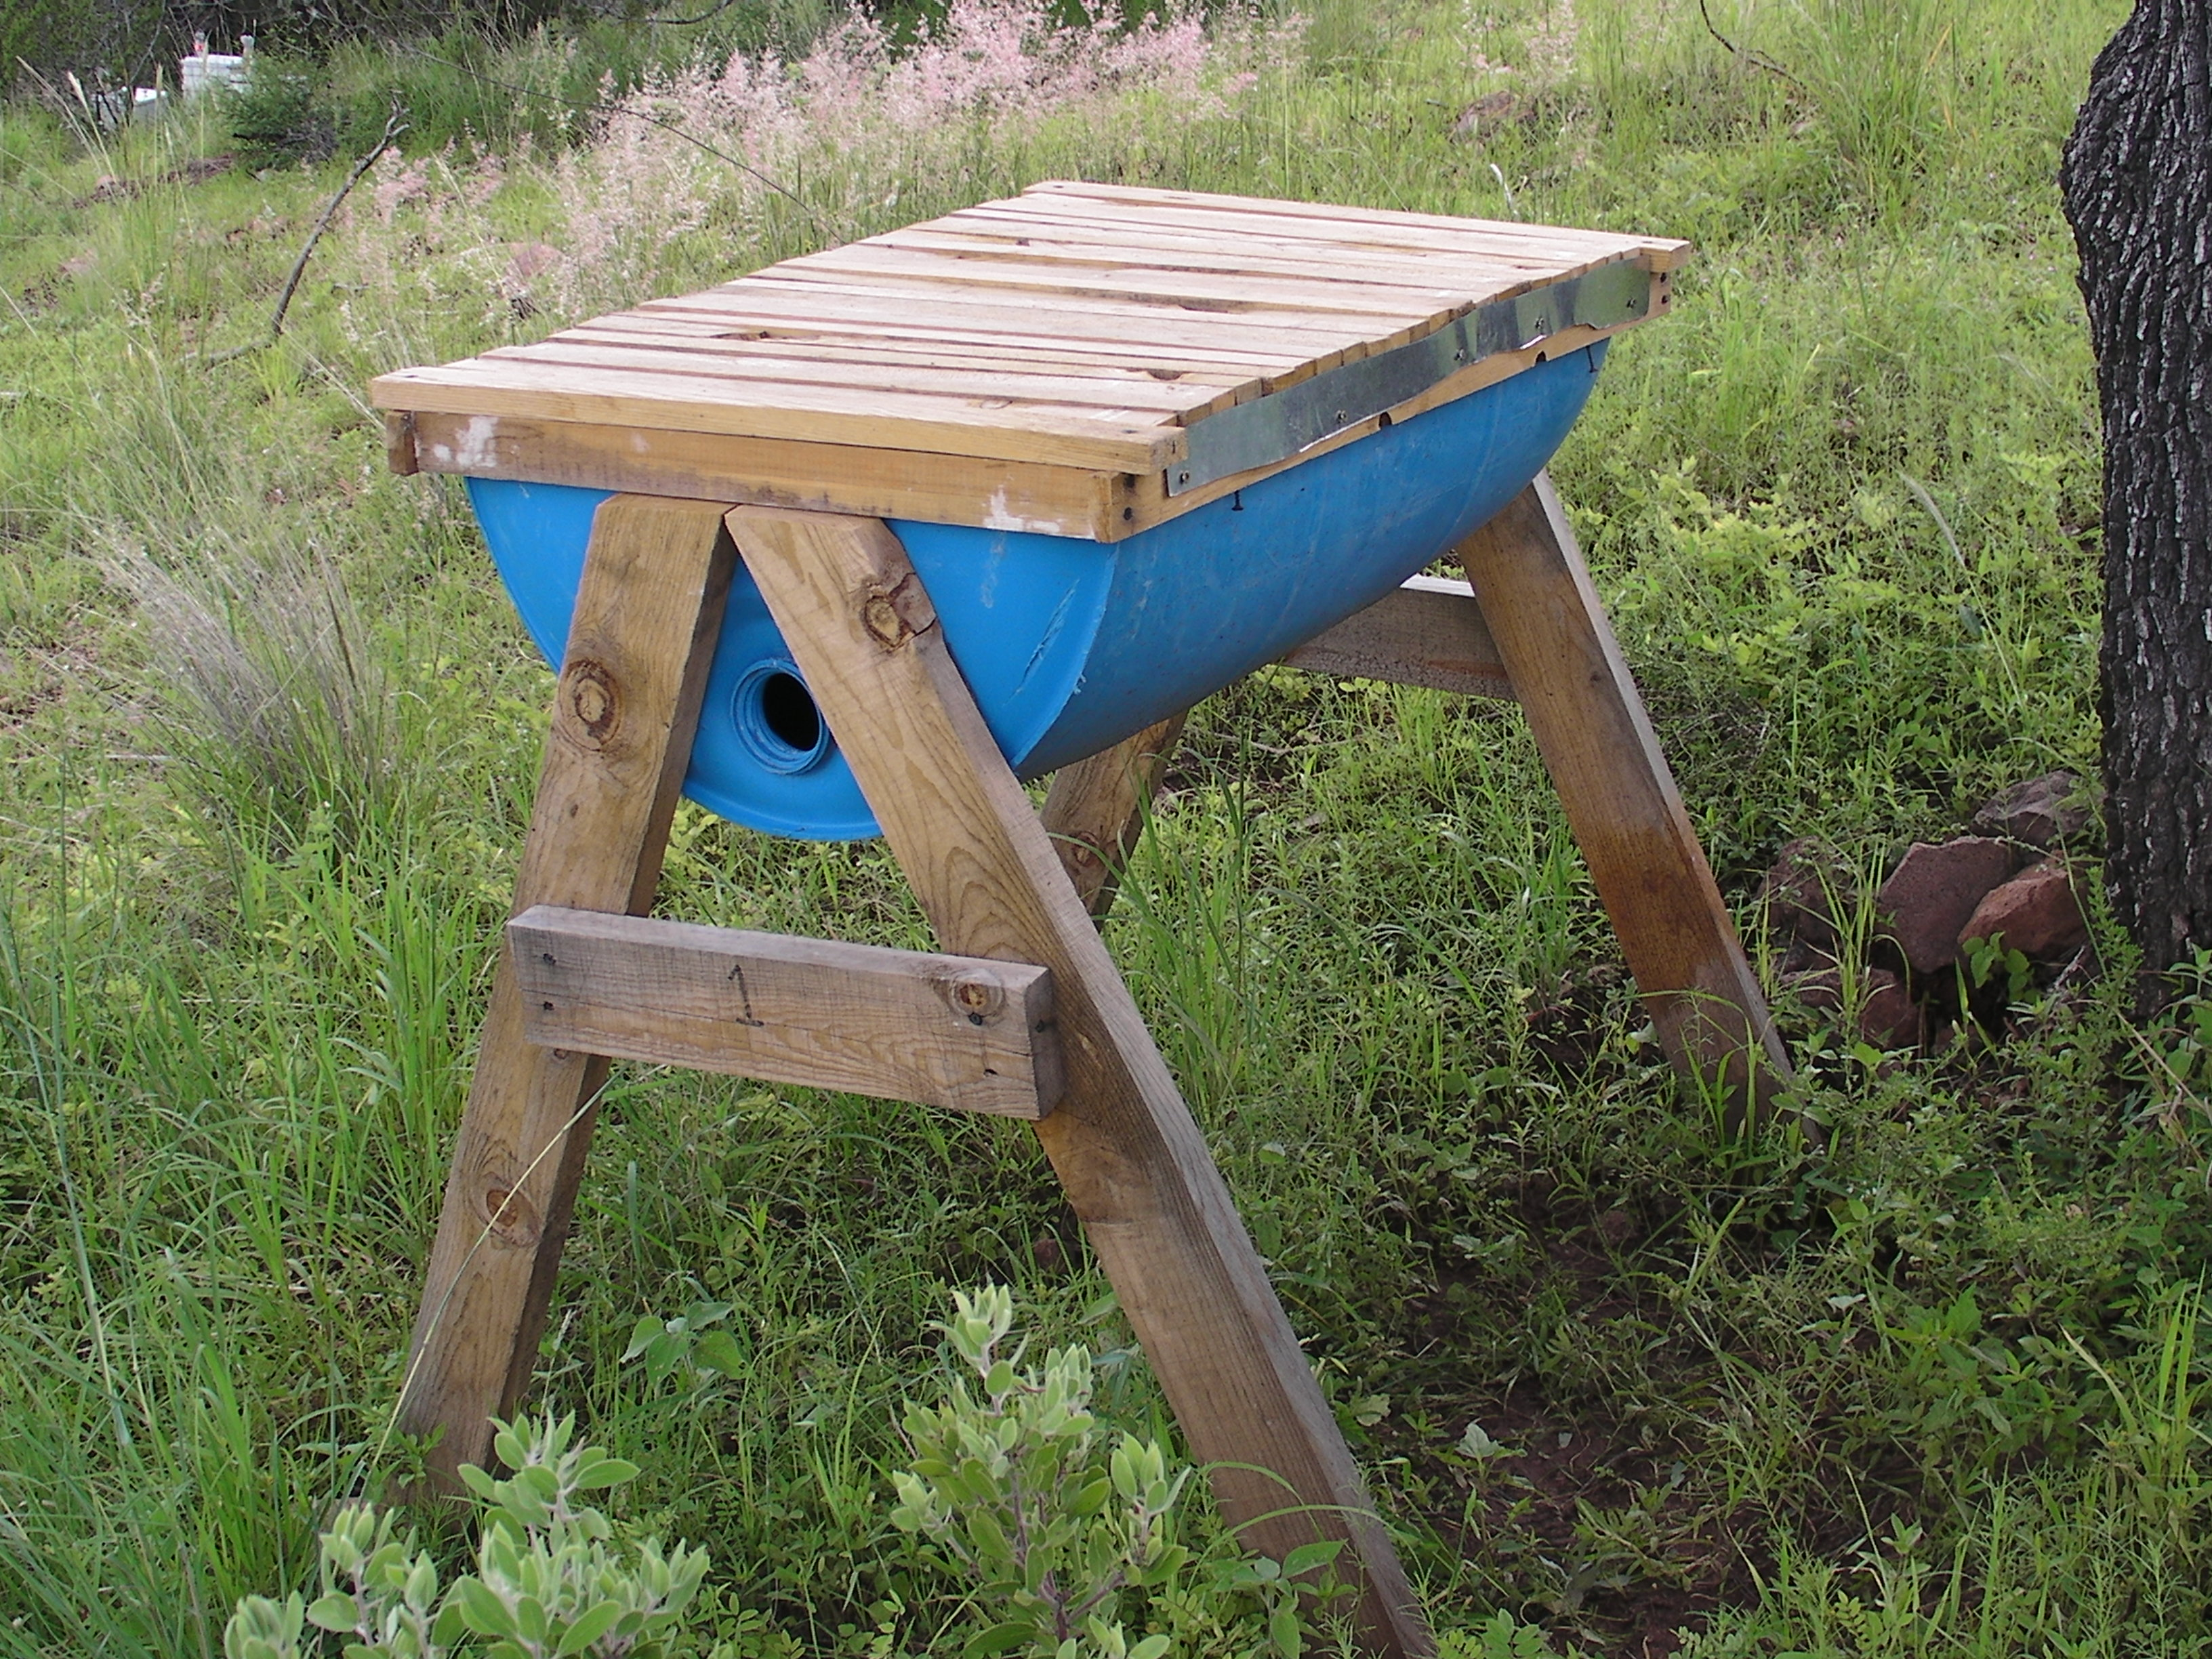 Make your own Honey Cow (Top Bar Bee Hive)